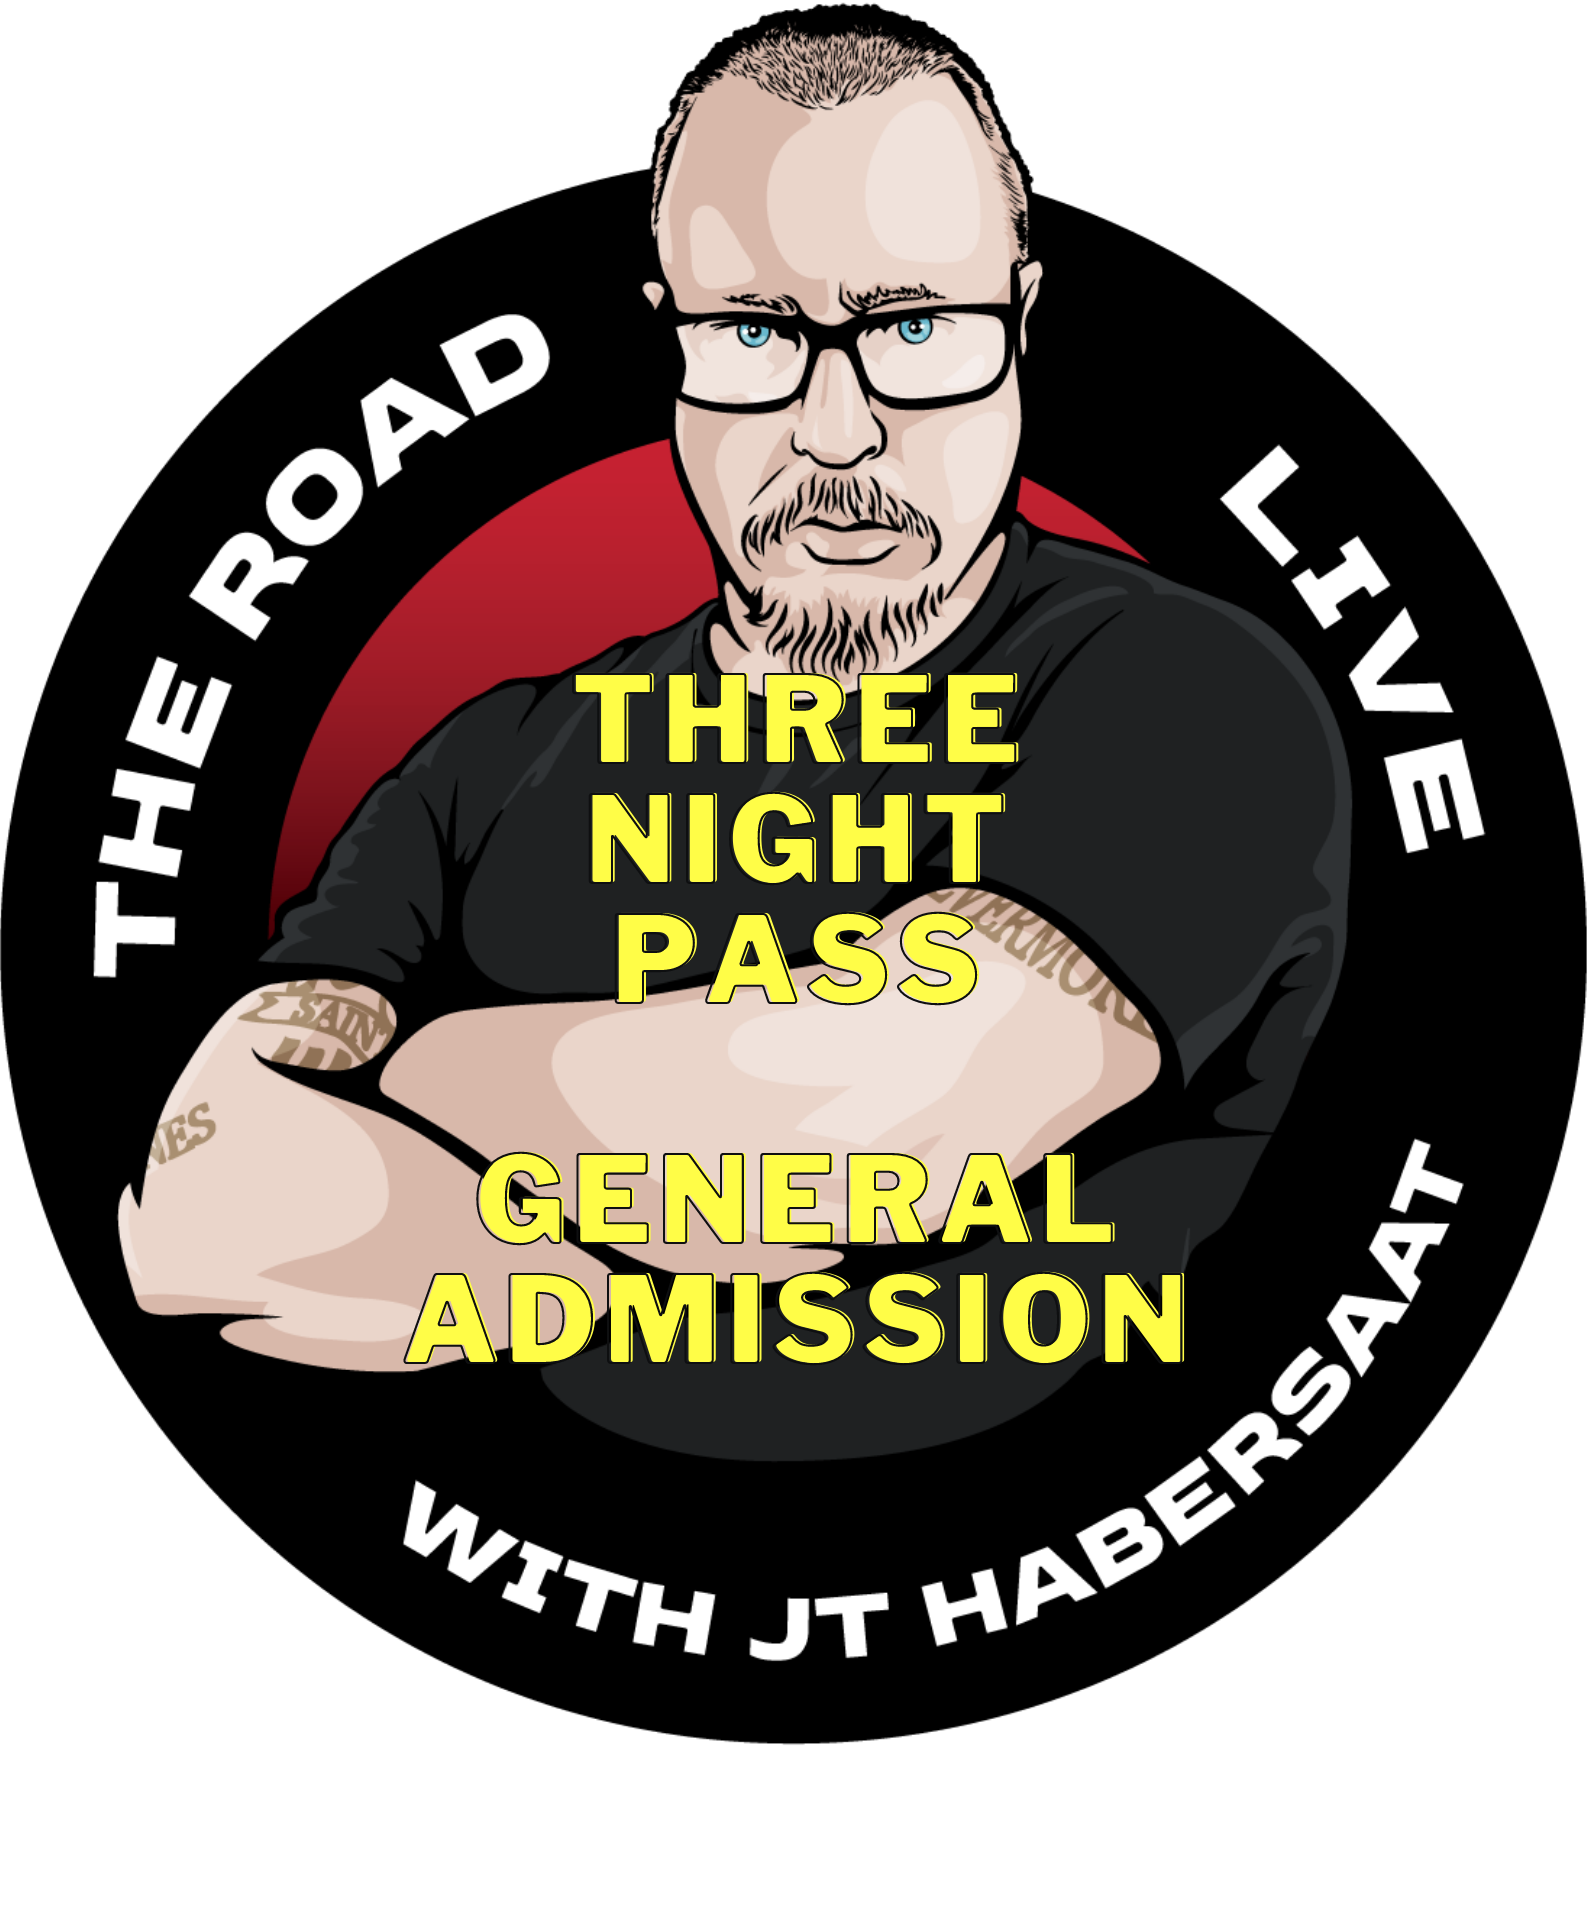 The Road Live: October 28th, 29th, 30th - 7:00 Pacific - 3 Night GA